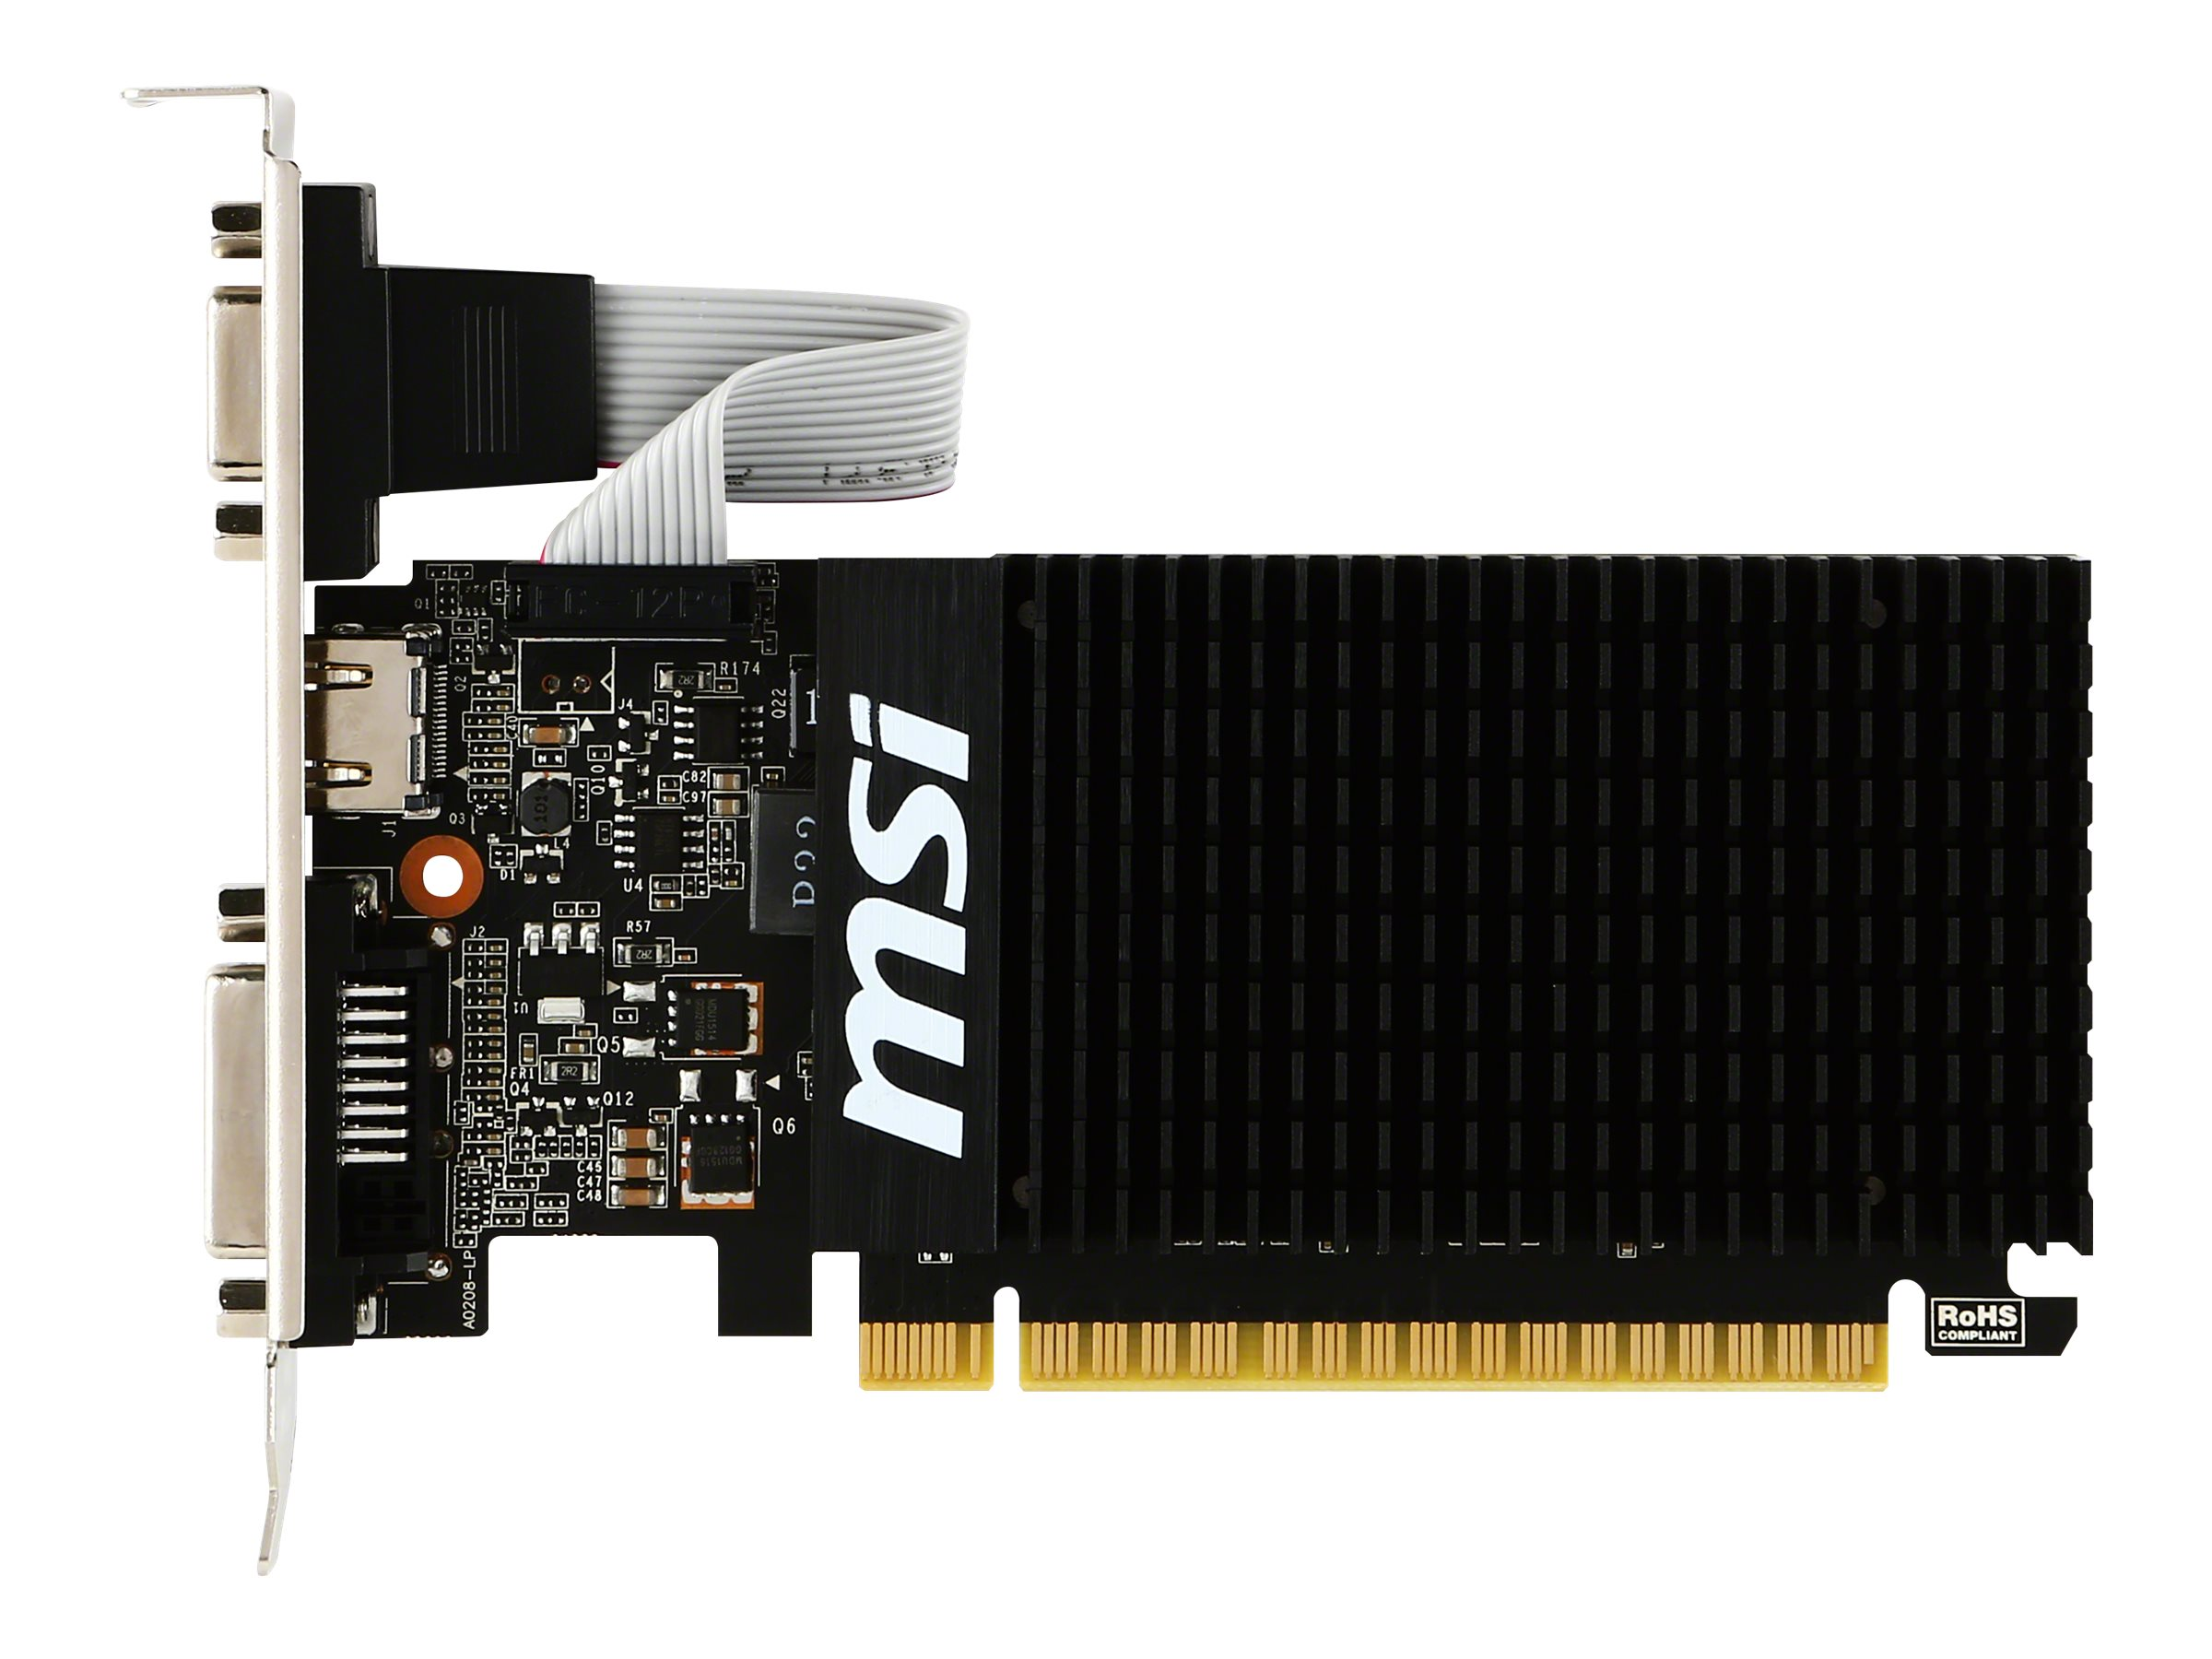 Microstar GeForce GT 710 PCIe 2.0 x8 Graphics Card, 1GB DDR3, GT 710 1GD3H LP